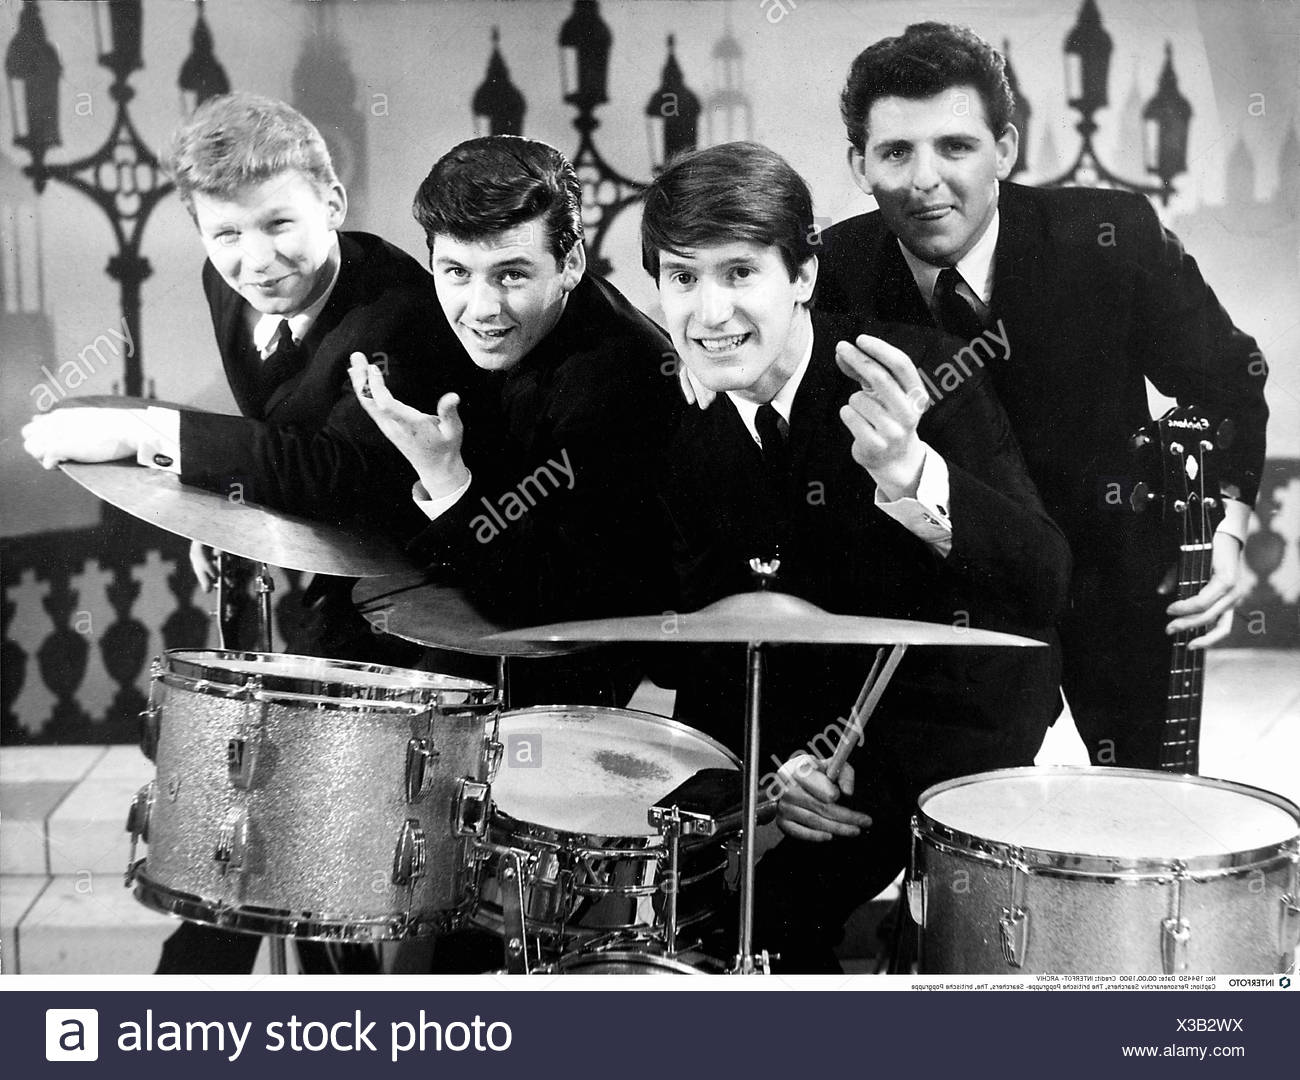 Searchers, The, founded in 1960, British Rock band, group picture, 1964, Additional-Rights-Clearances-NA - Stock Image